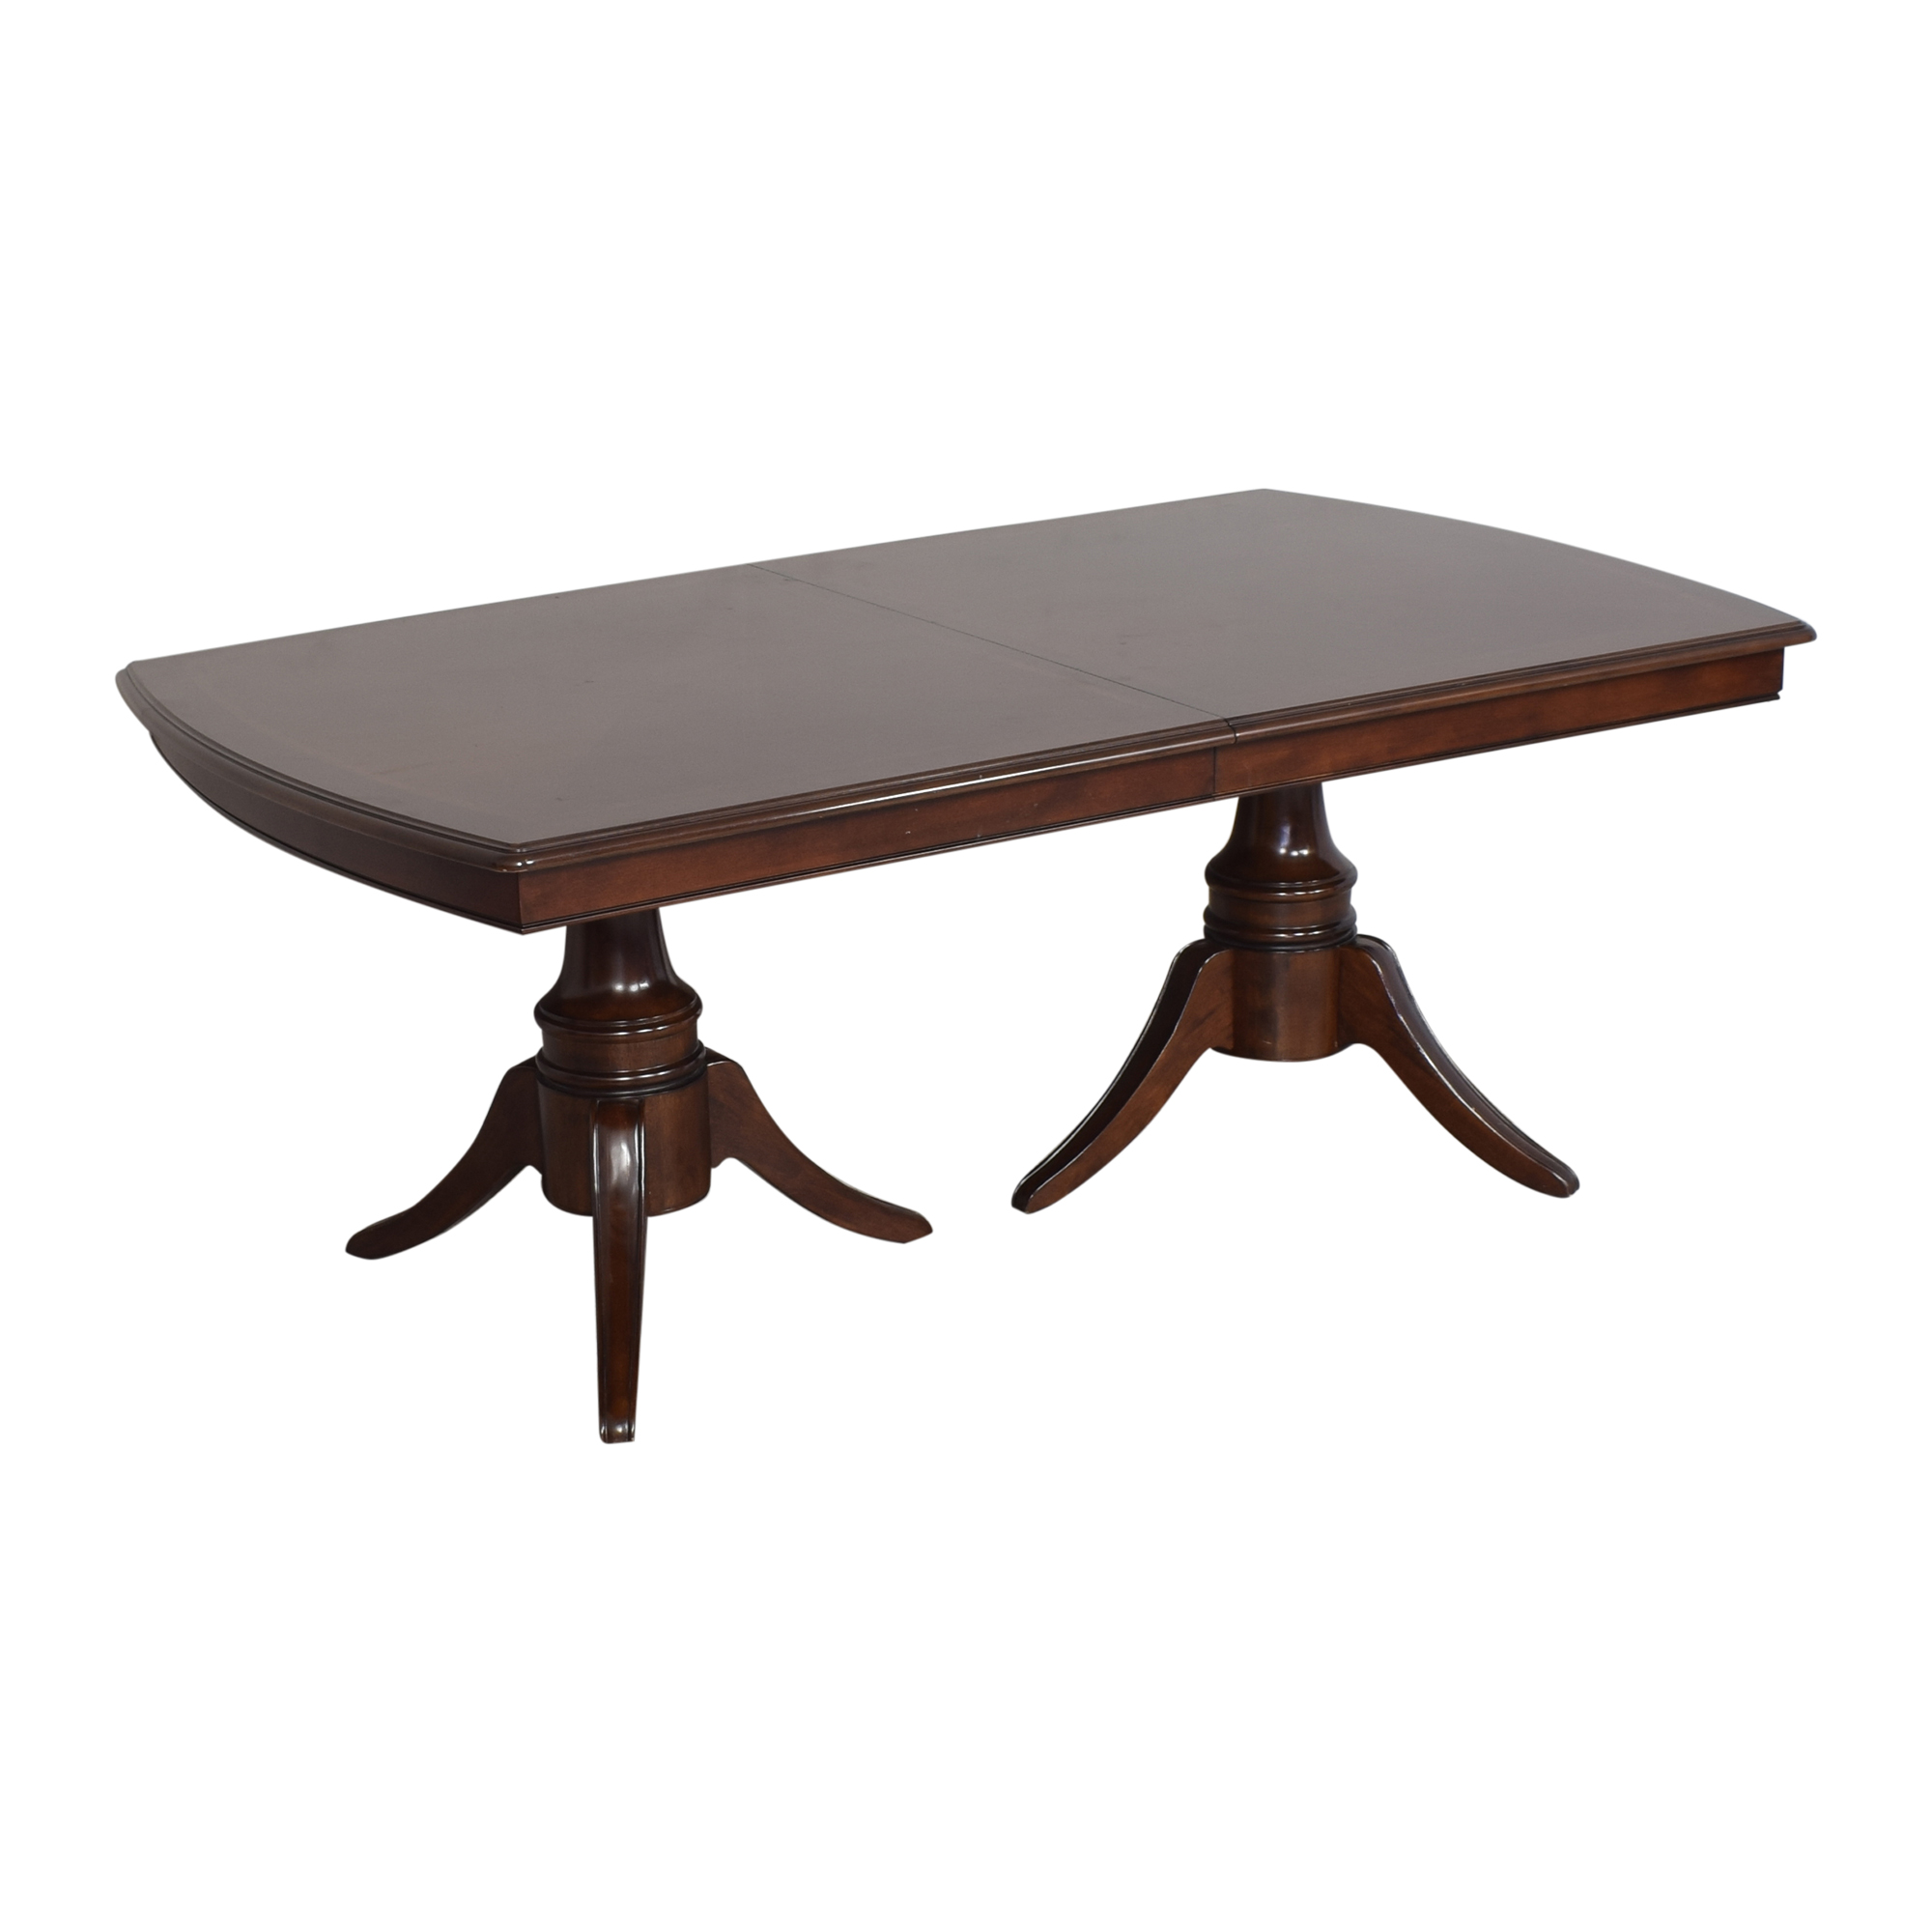 Raymour & Flanigan Raymour & Flanigan Double Pedestal Extendable Dining Table ct